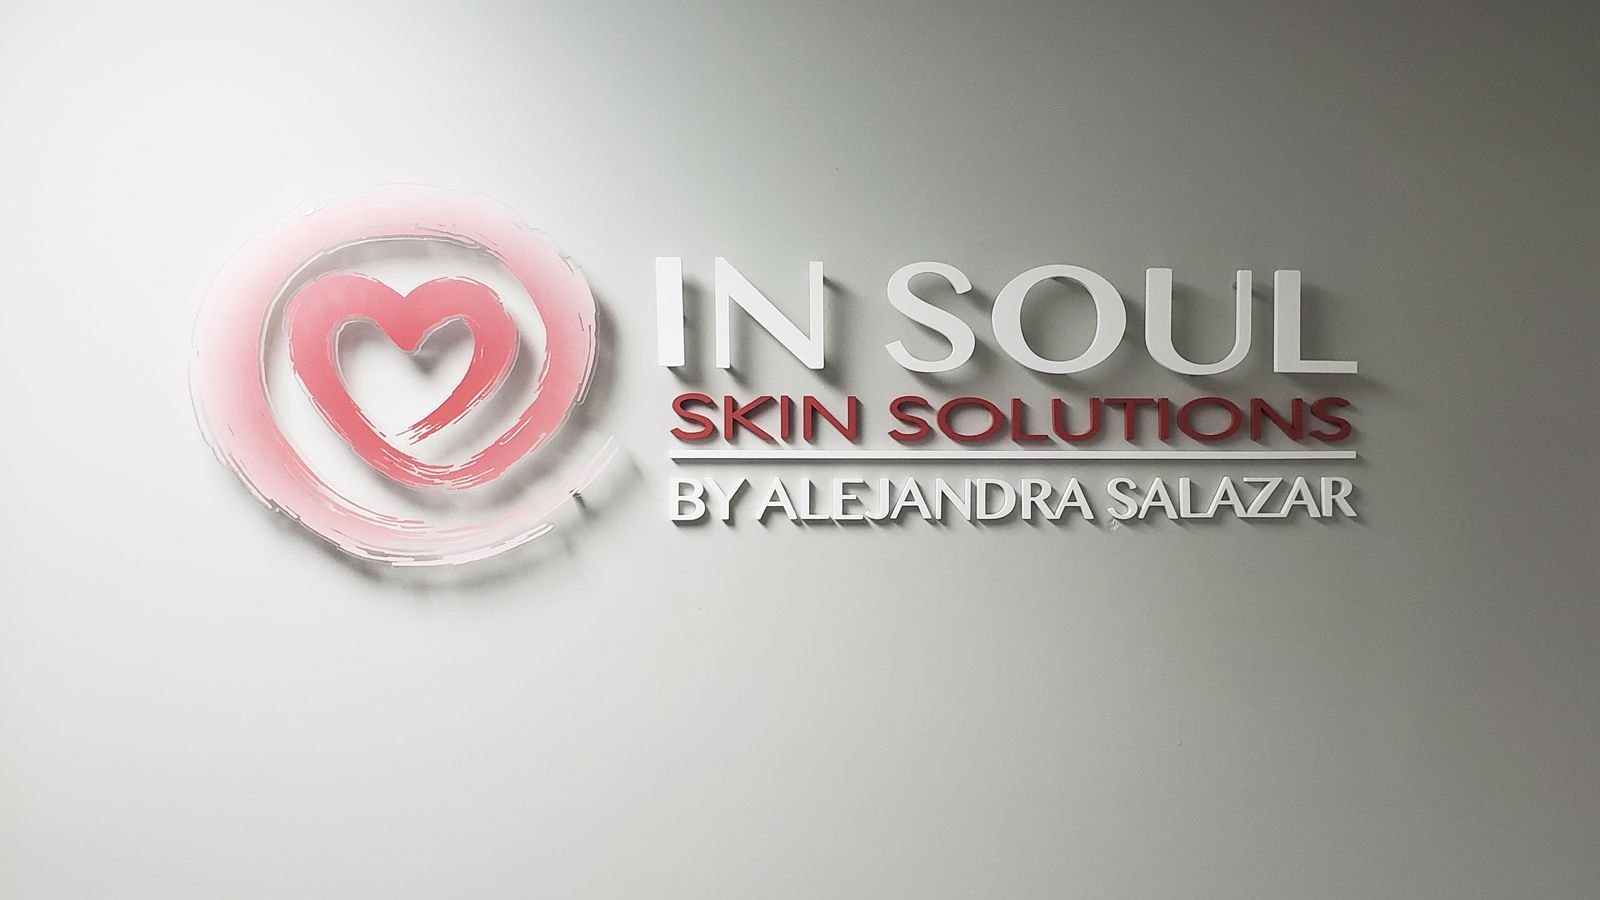 In Soul Skin Solutions 3d office sign with the name and logo of the company painted made of acrylic for lobby branding